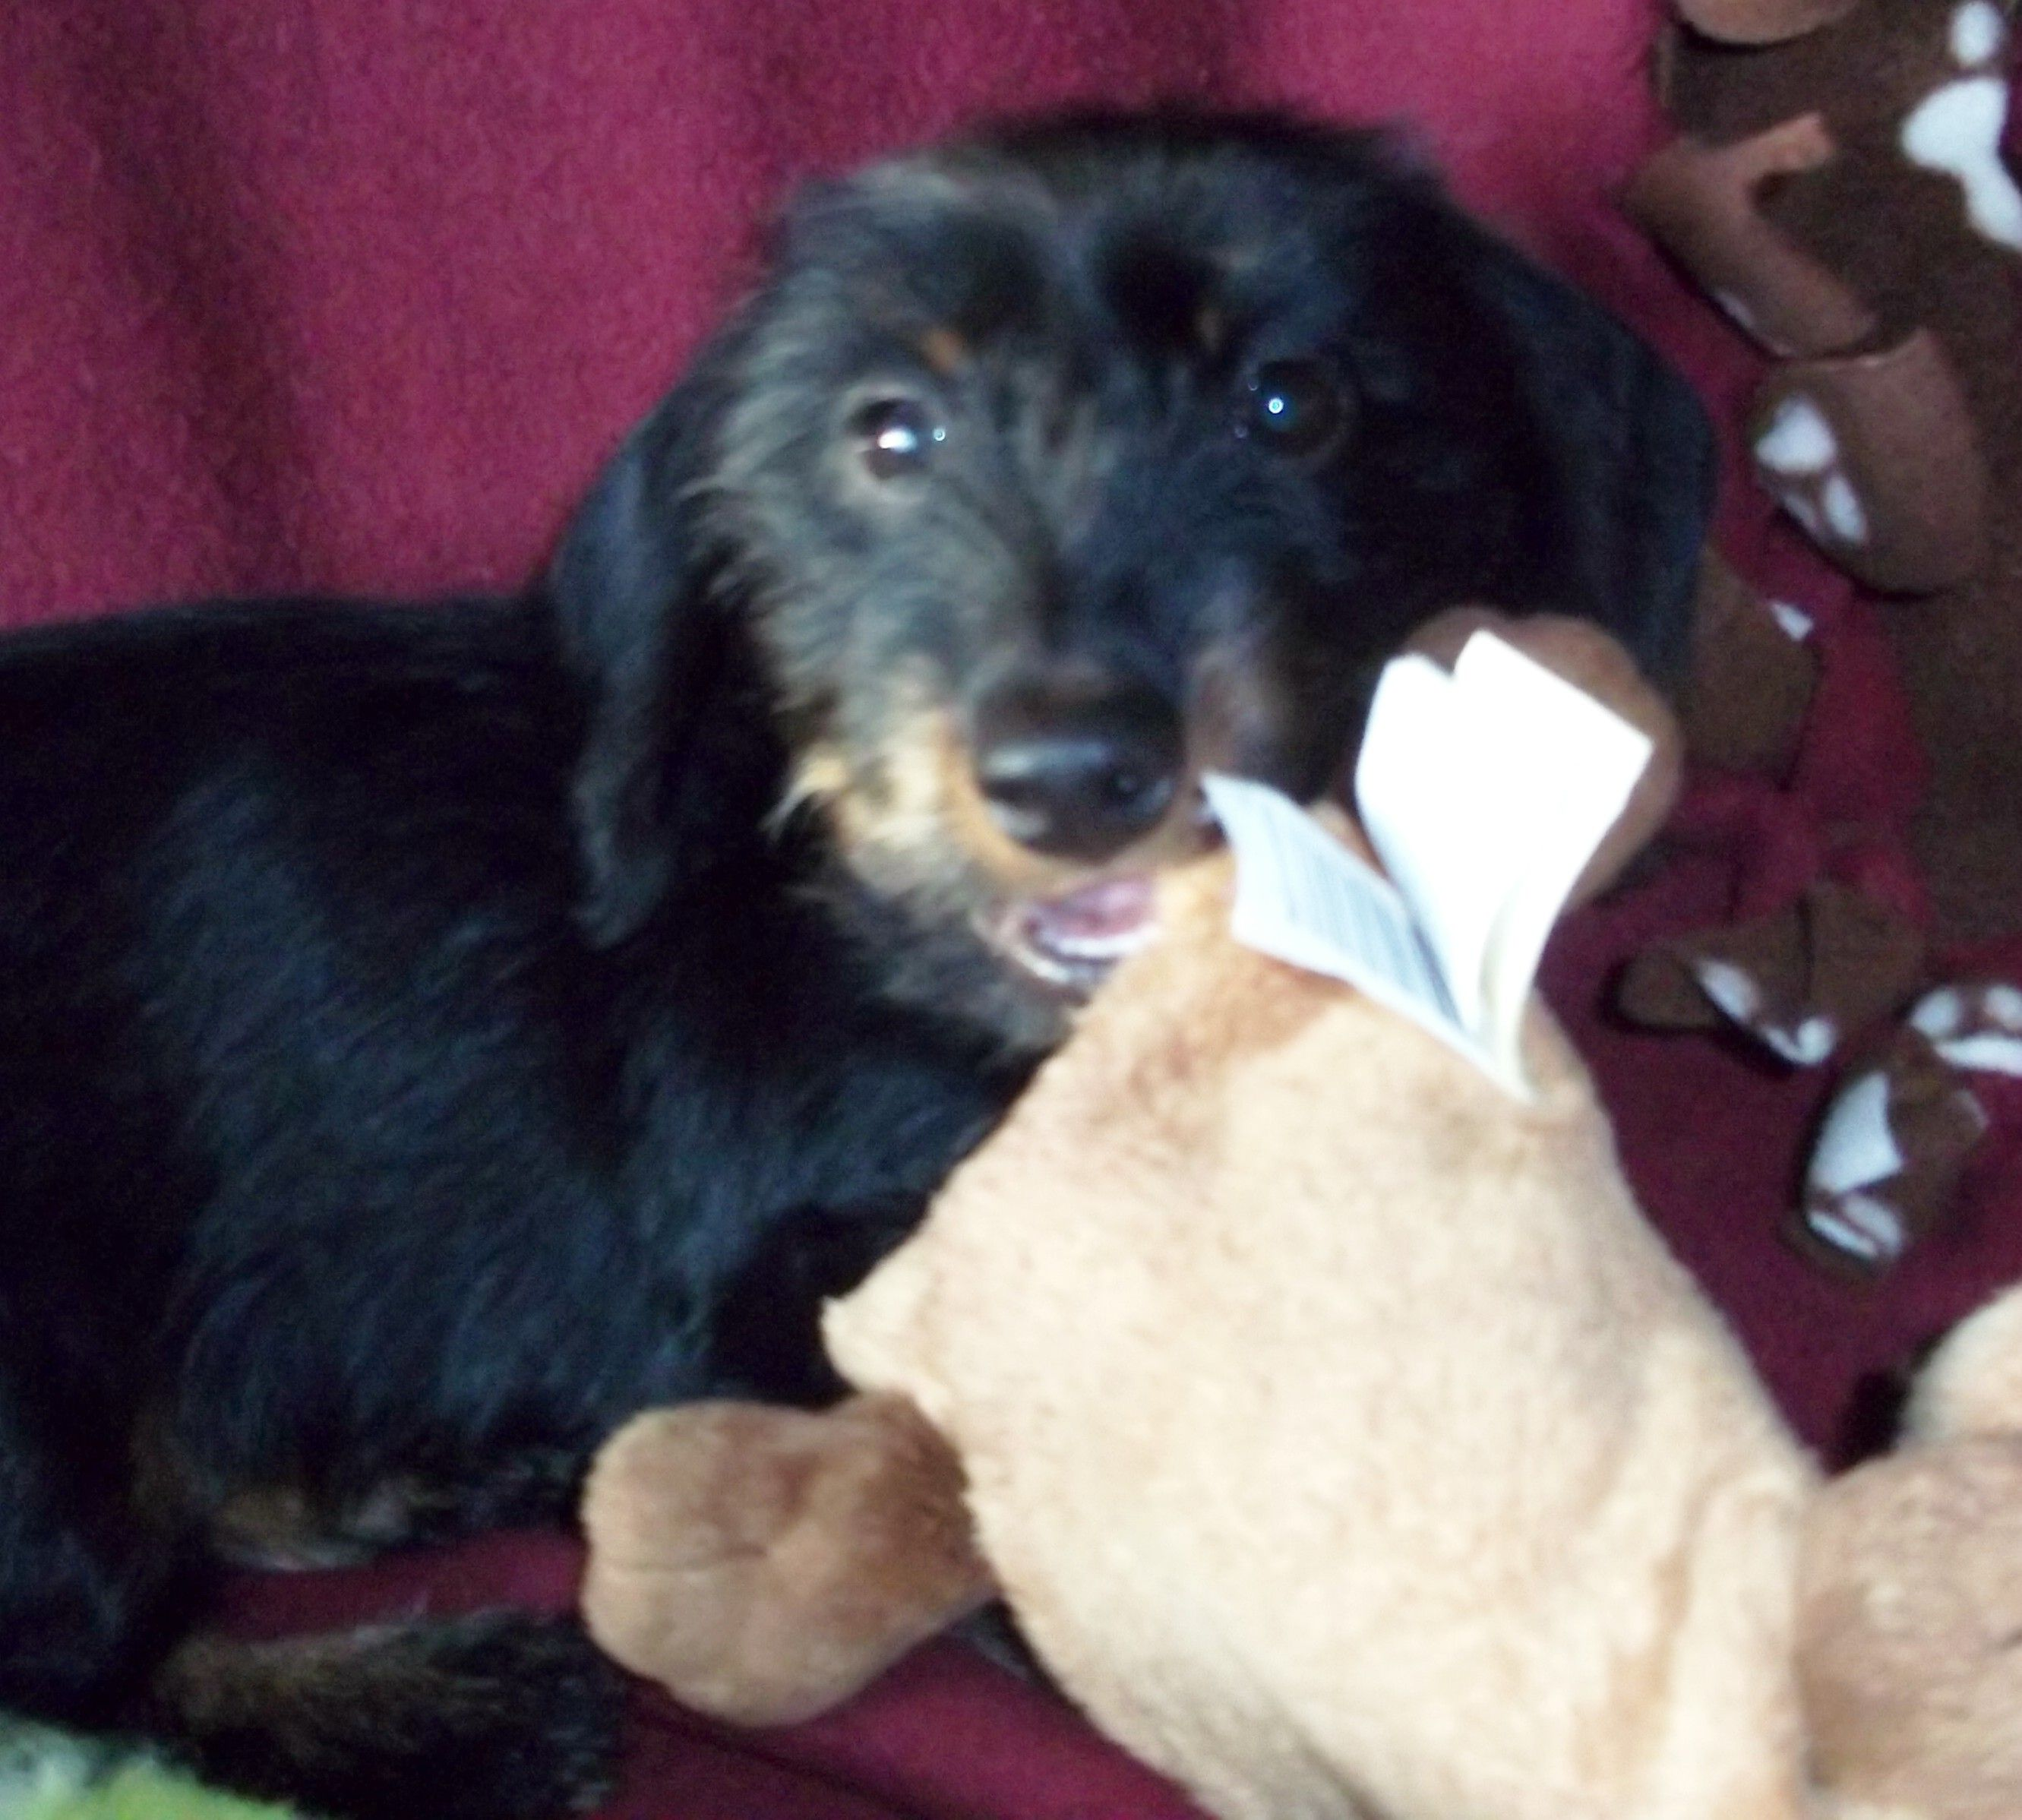 Here Is Hilda My Mini Black And Tan Wirehair Dachshund At 13 Weeks Old She Is Awesome Dachshund Black And Tan Animals